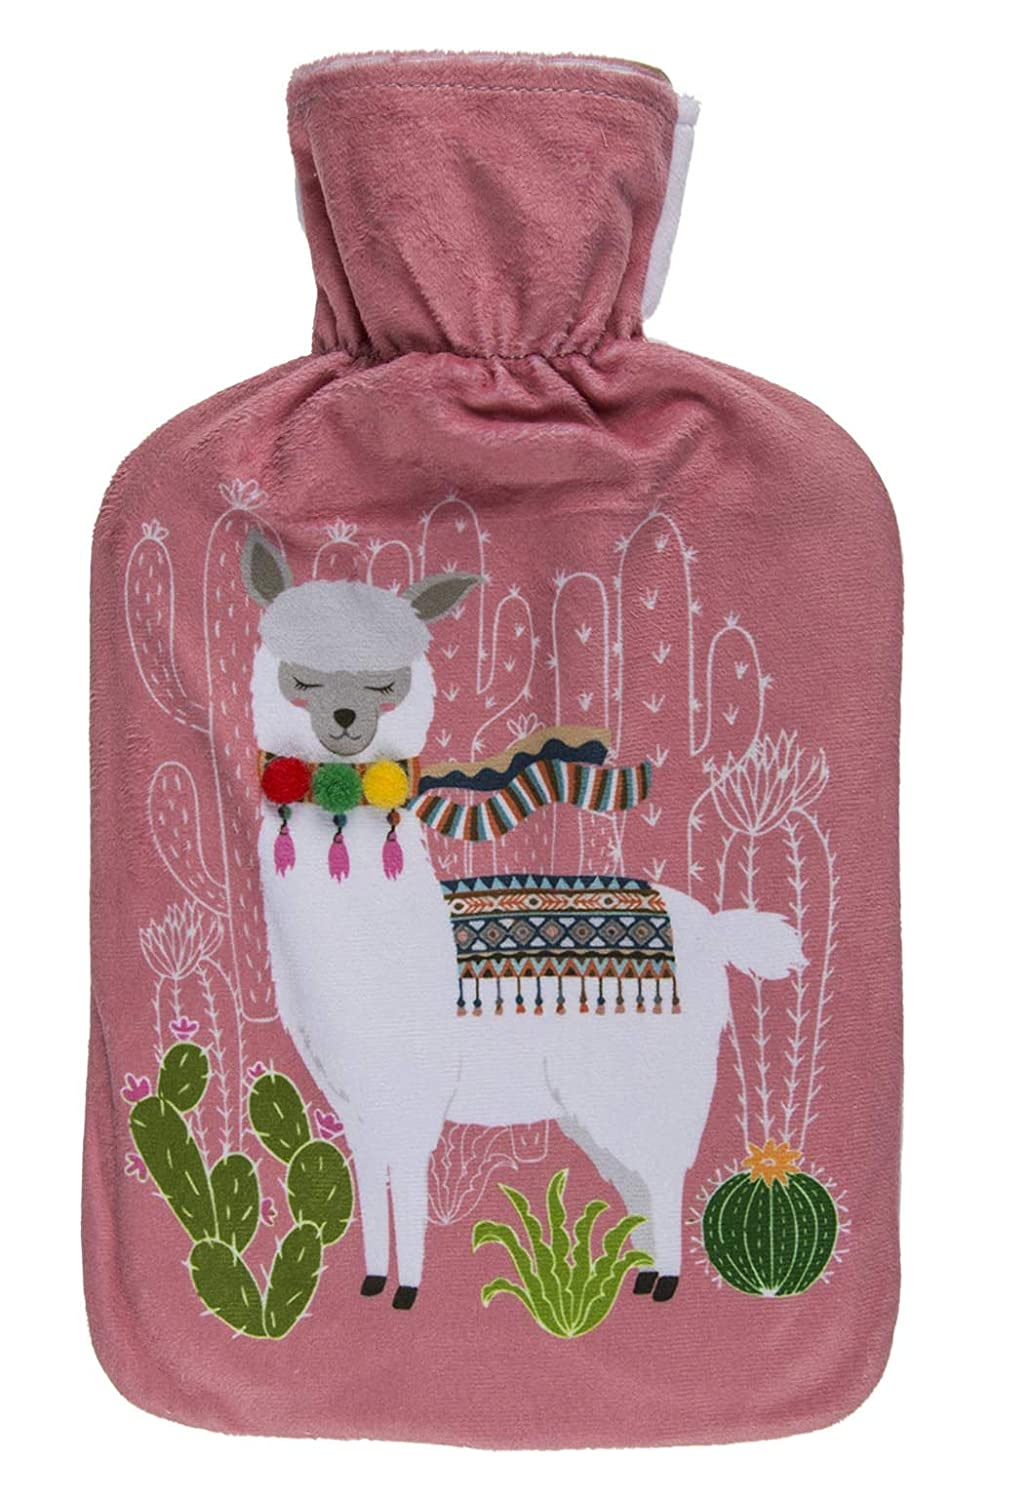 Perfect Gift Present - Keep Warm in Bed This Winter - Green Llama Design hot Water Bottle - Perfect for Christmas, Birthdays Stocking Fillers & Secret Santa